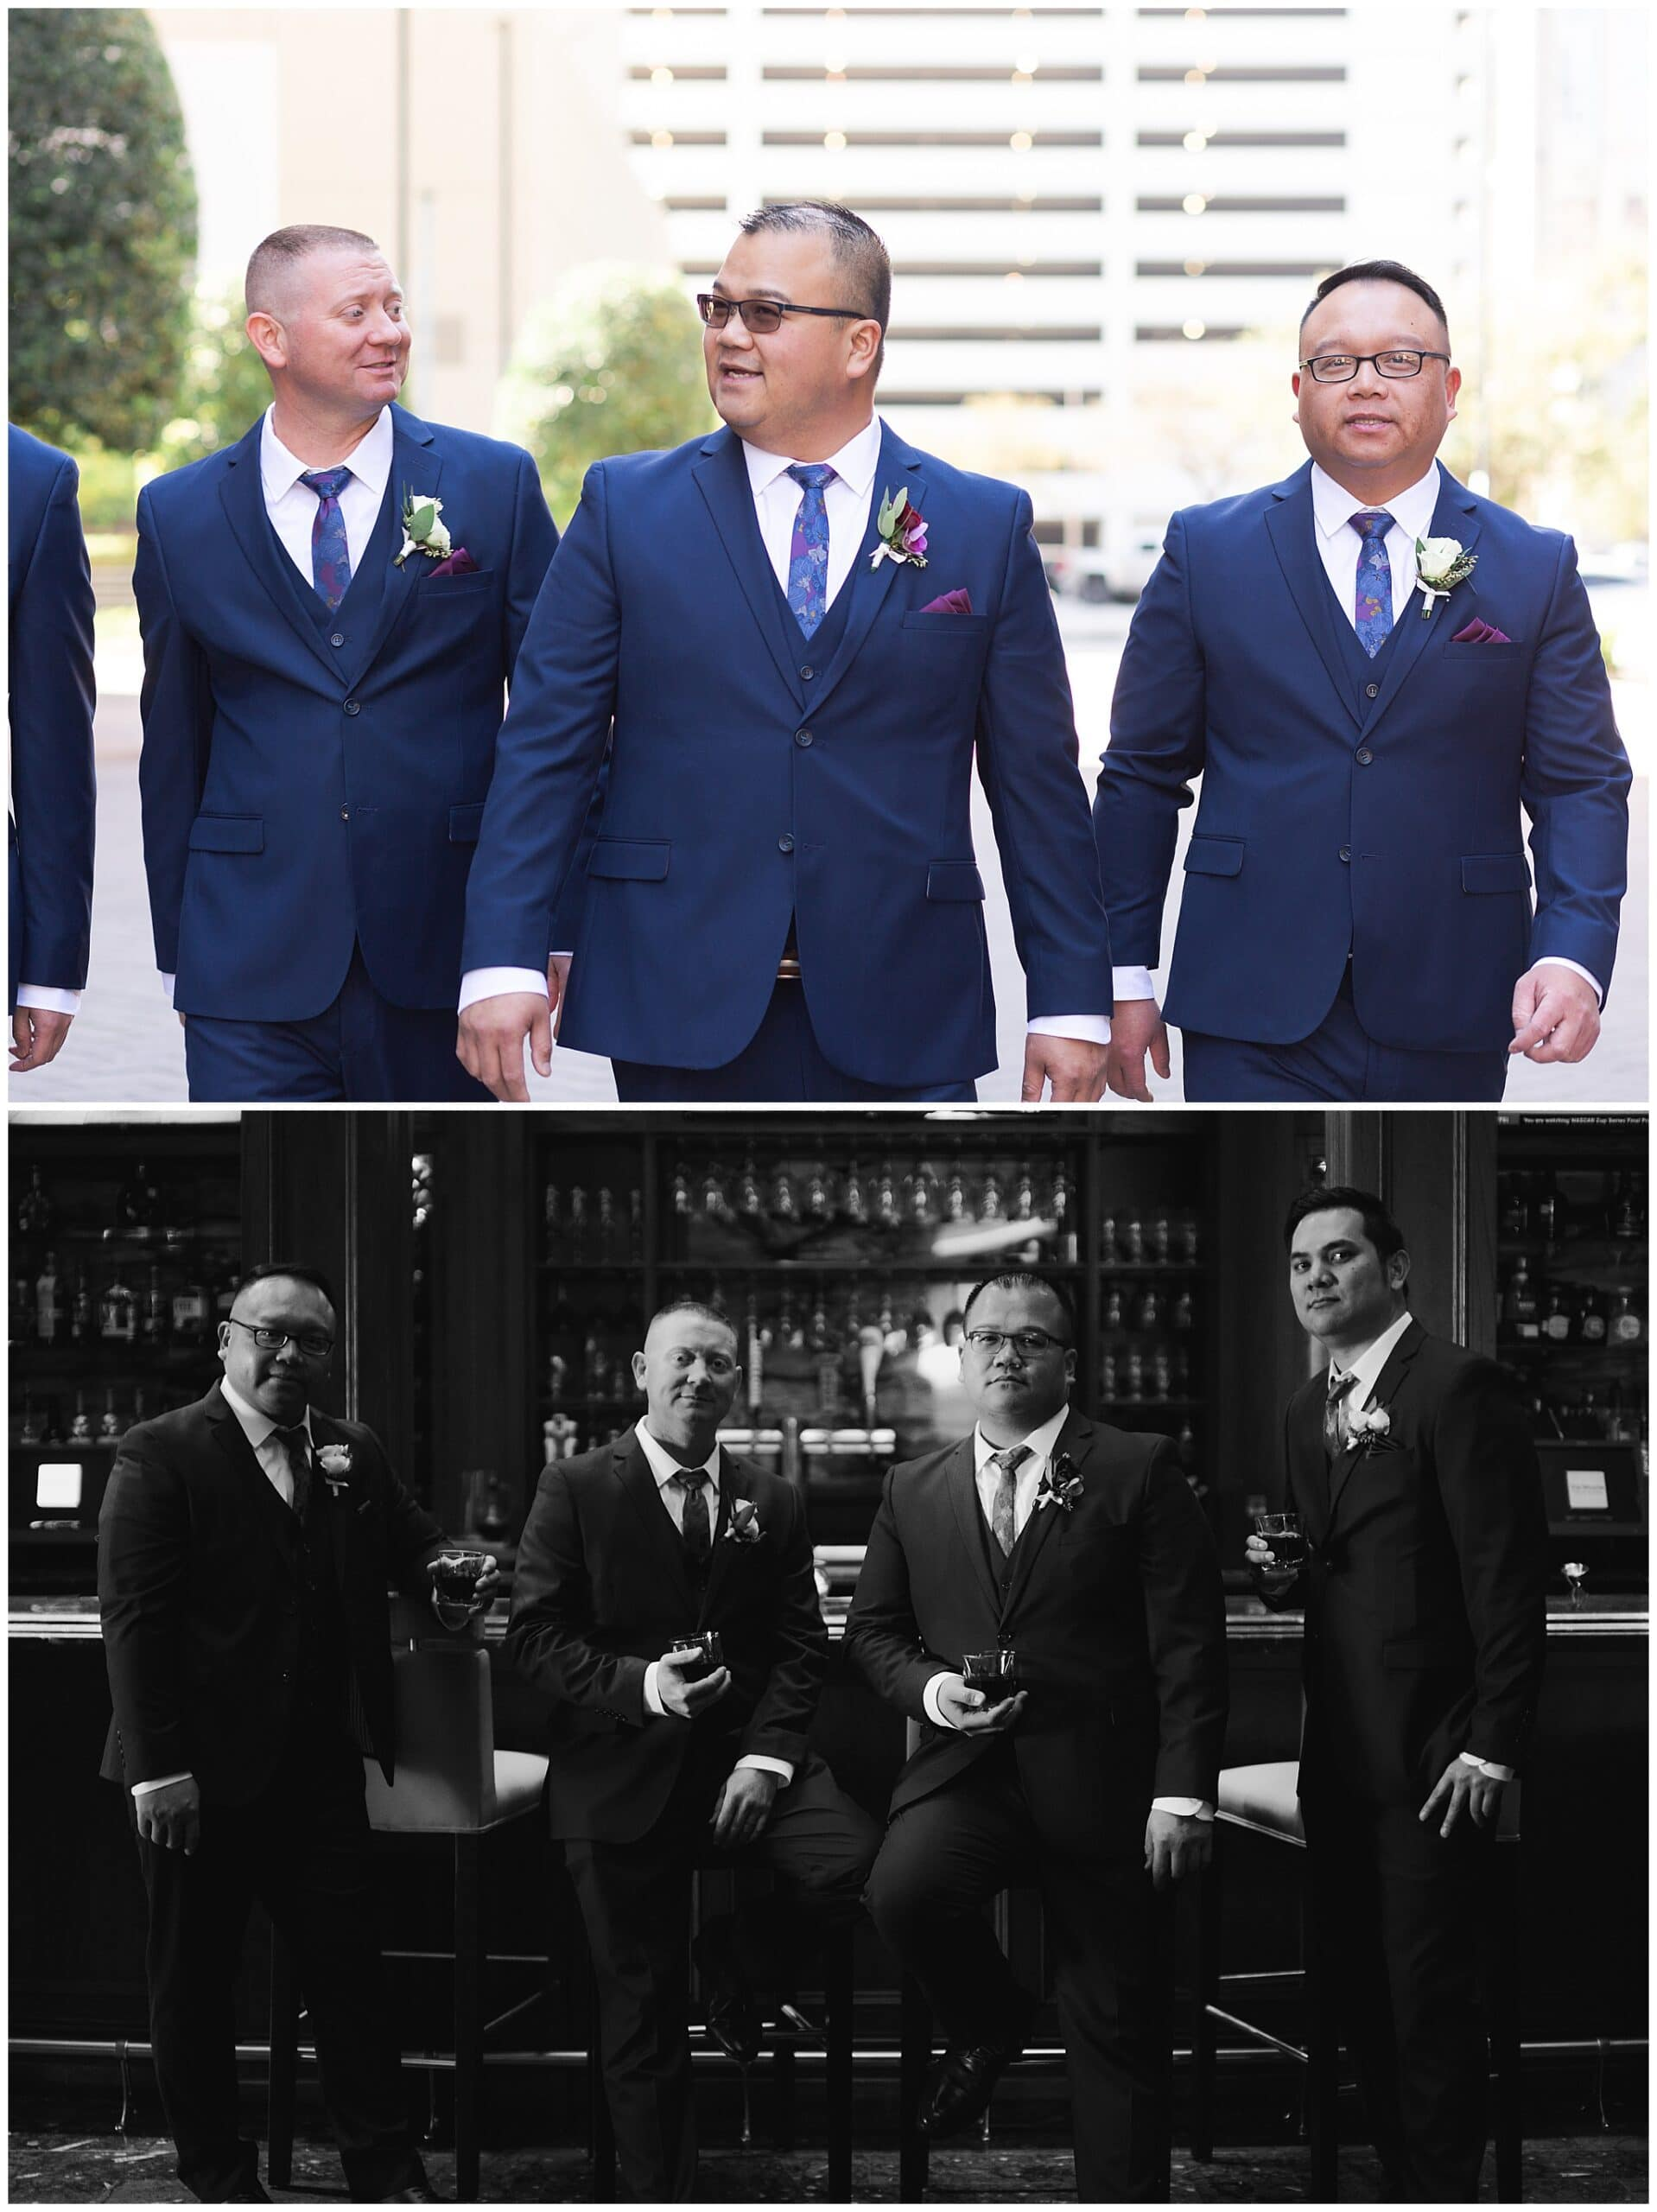 groom and his groomsmen at The Westin in downtown Houston, Texas by Swish and Click Photography